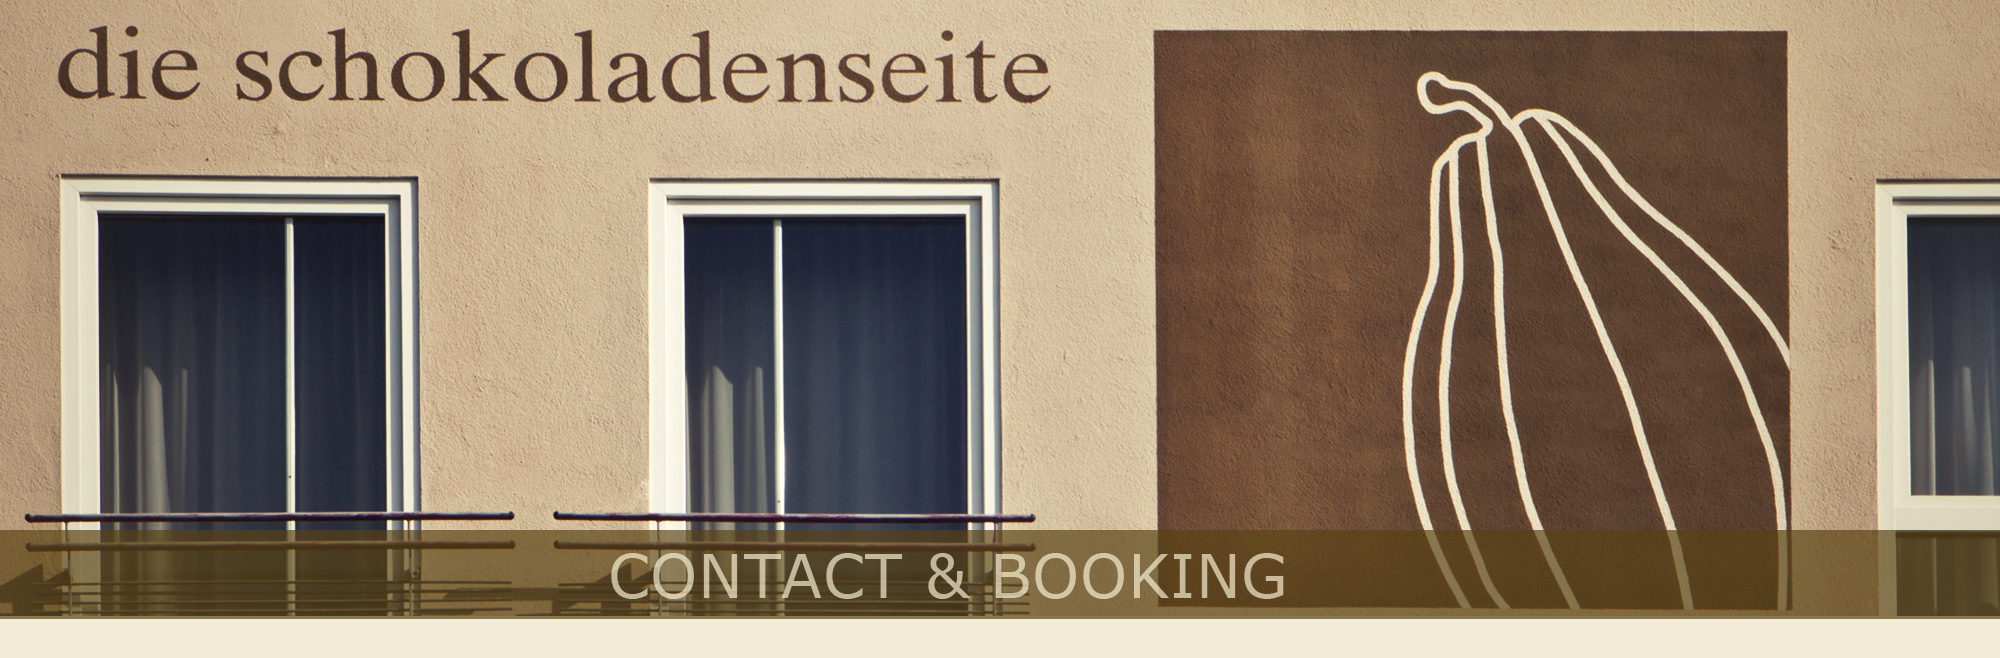 Landshut - Hotel Lifestyle Contact & Booking